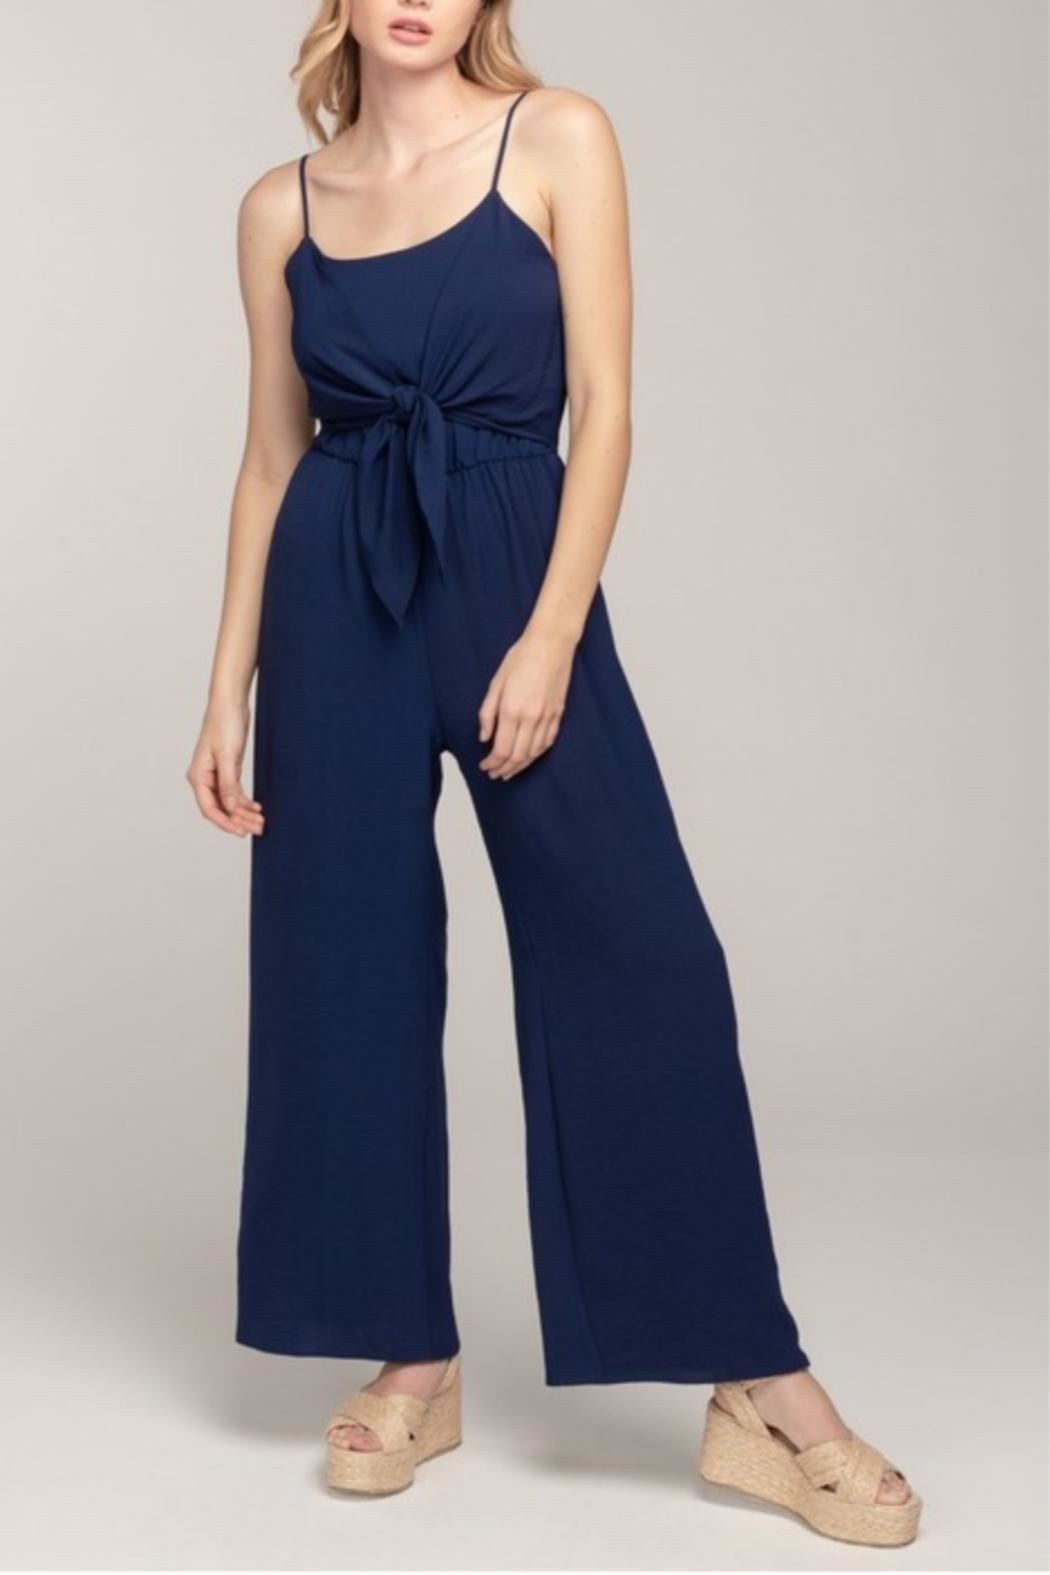 Everly Cami Tie-Front Jumpsuit - Main Image